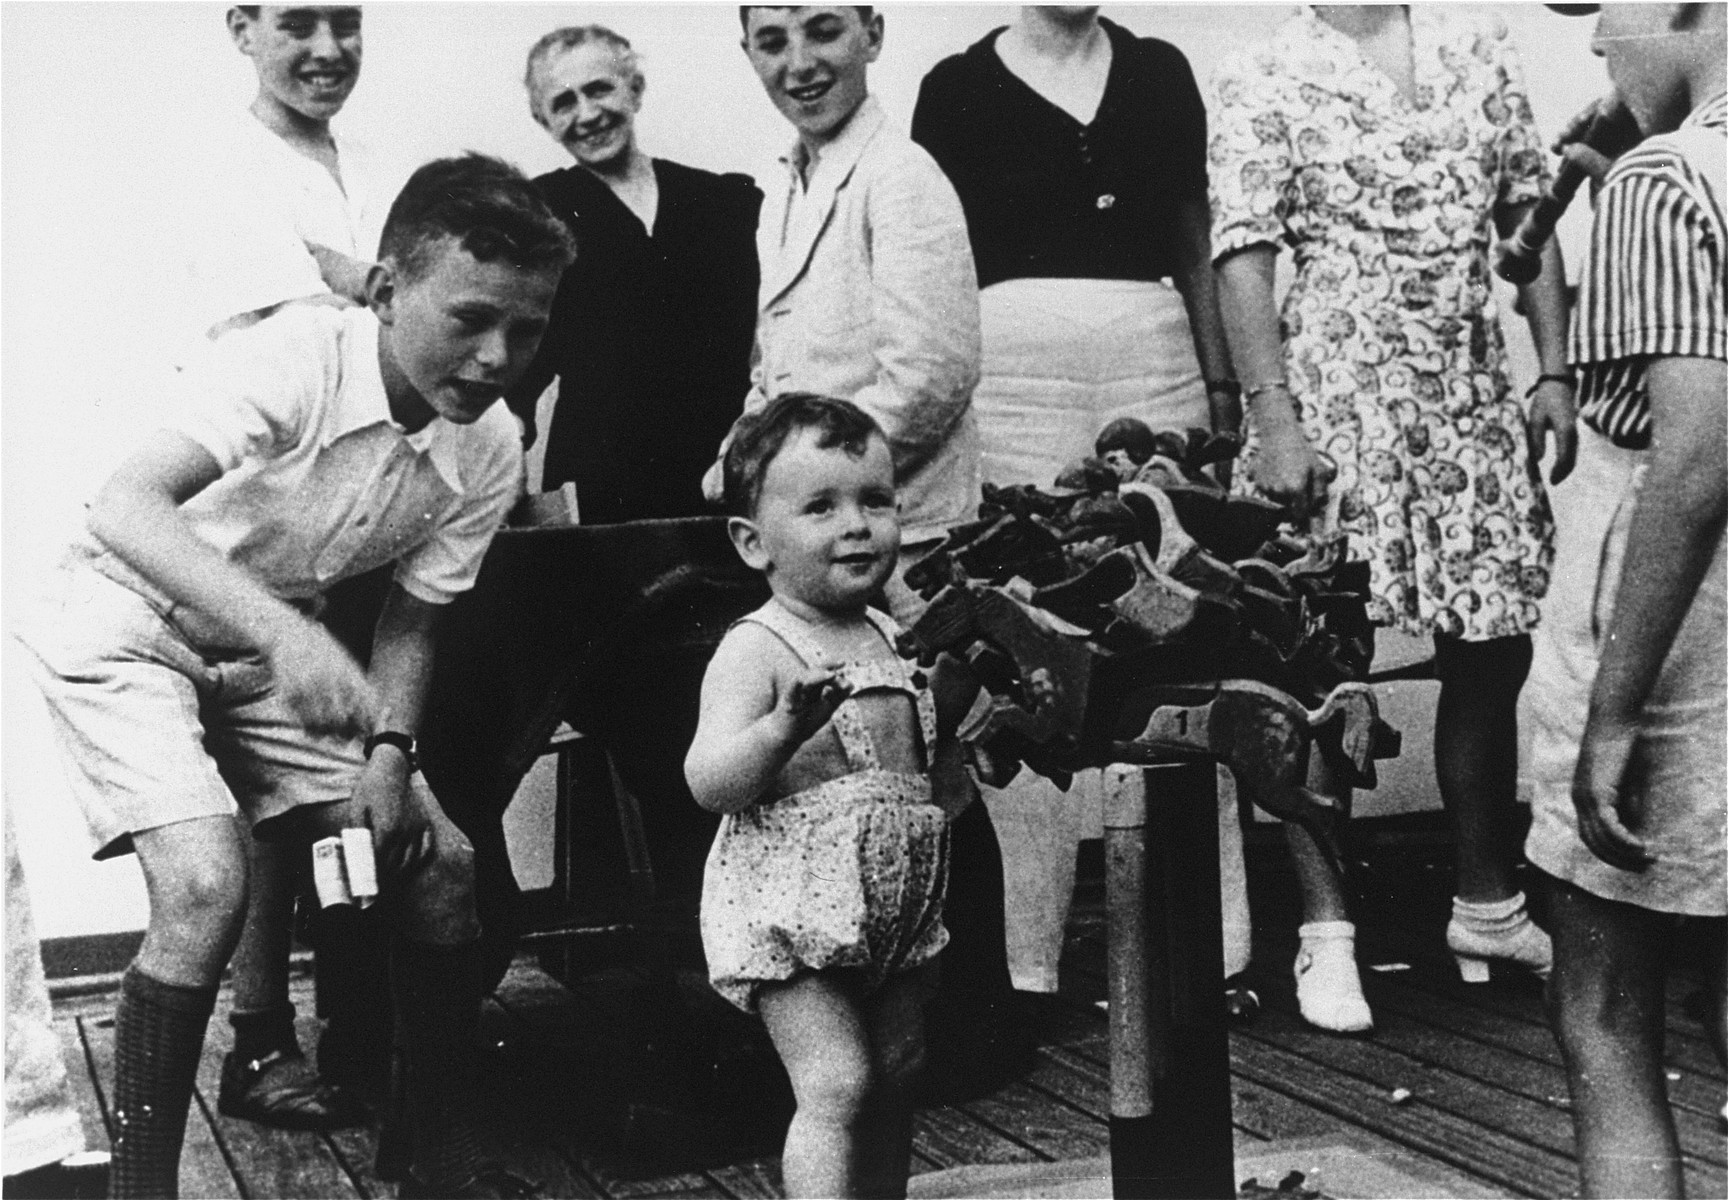 Heiner Vendig (center) plays with a steeplechase toy on the deck of the MS St. Louis.  Herbert Karliner is pictured standing behind him at the left.